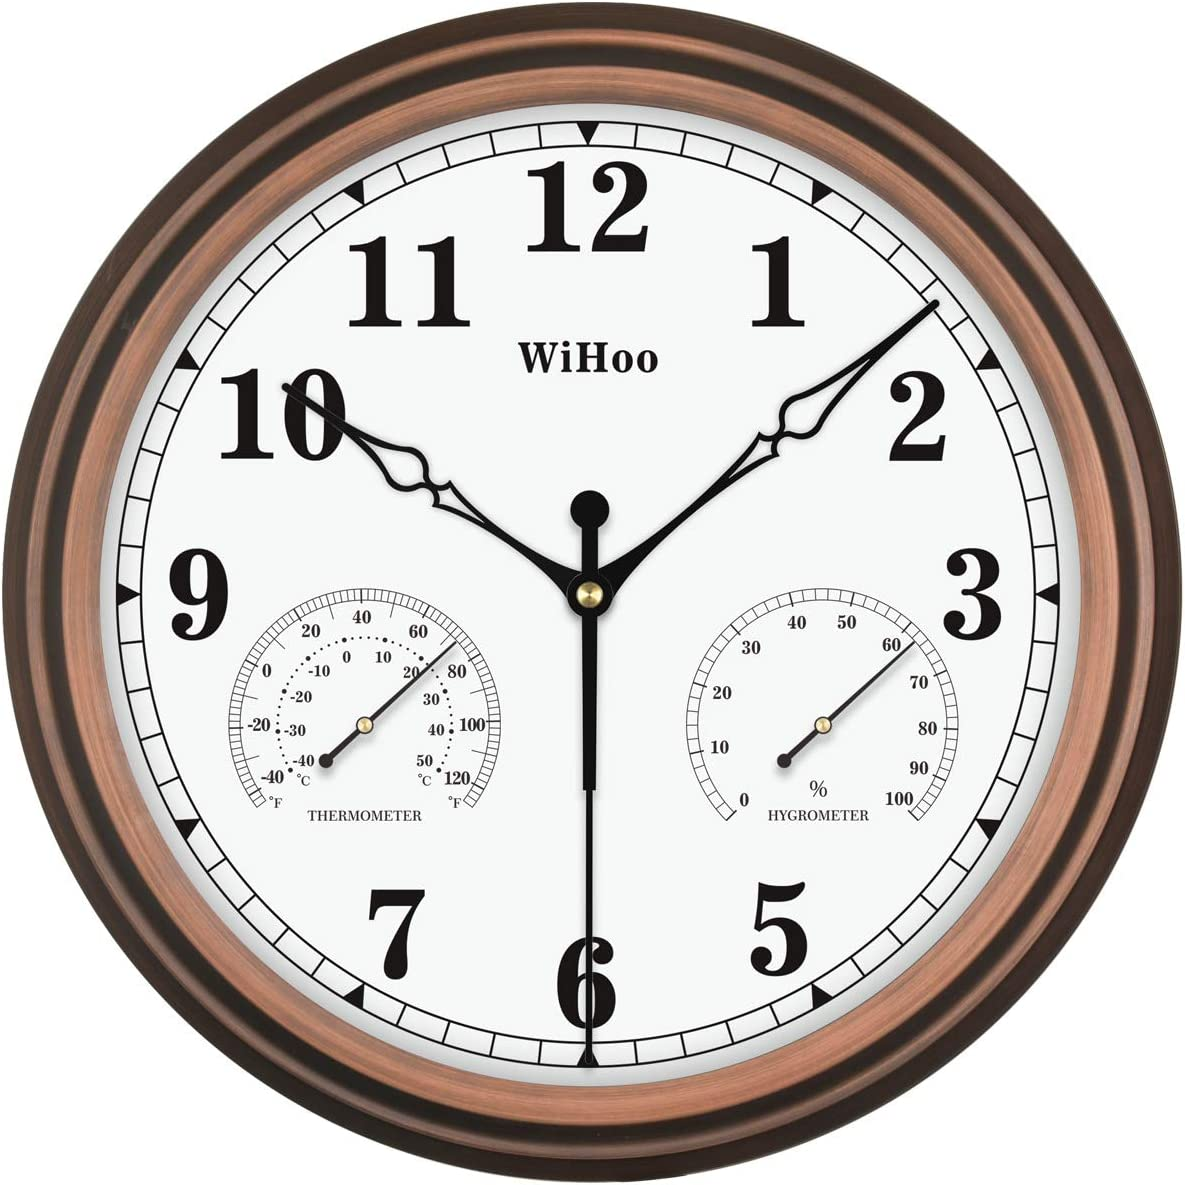 Popular popular WiHoo 15 Inch Silent Outdoor and List price with Hygrome Clocks Thermometer